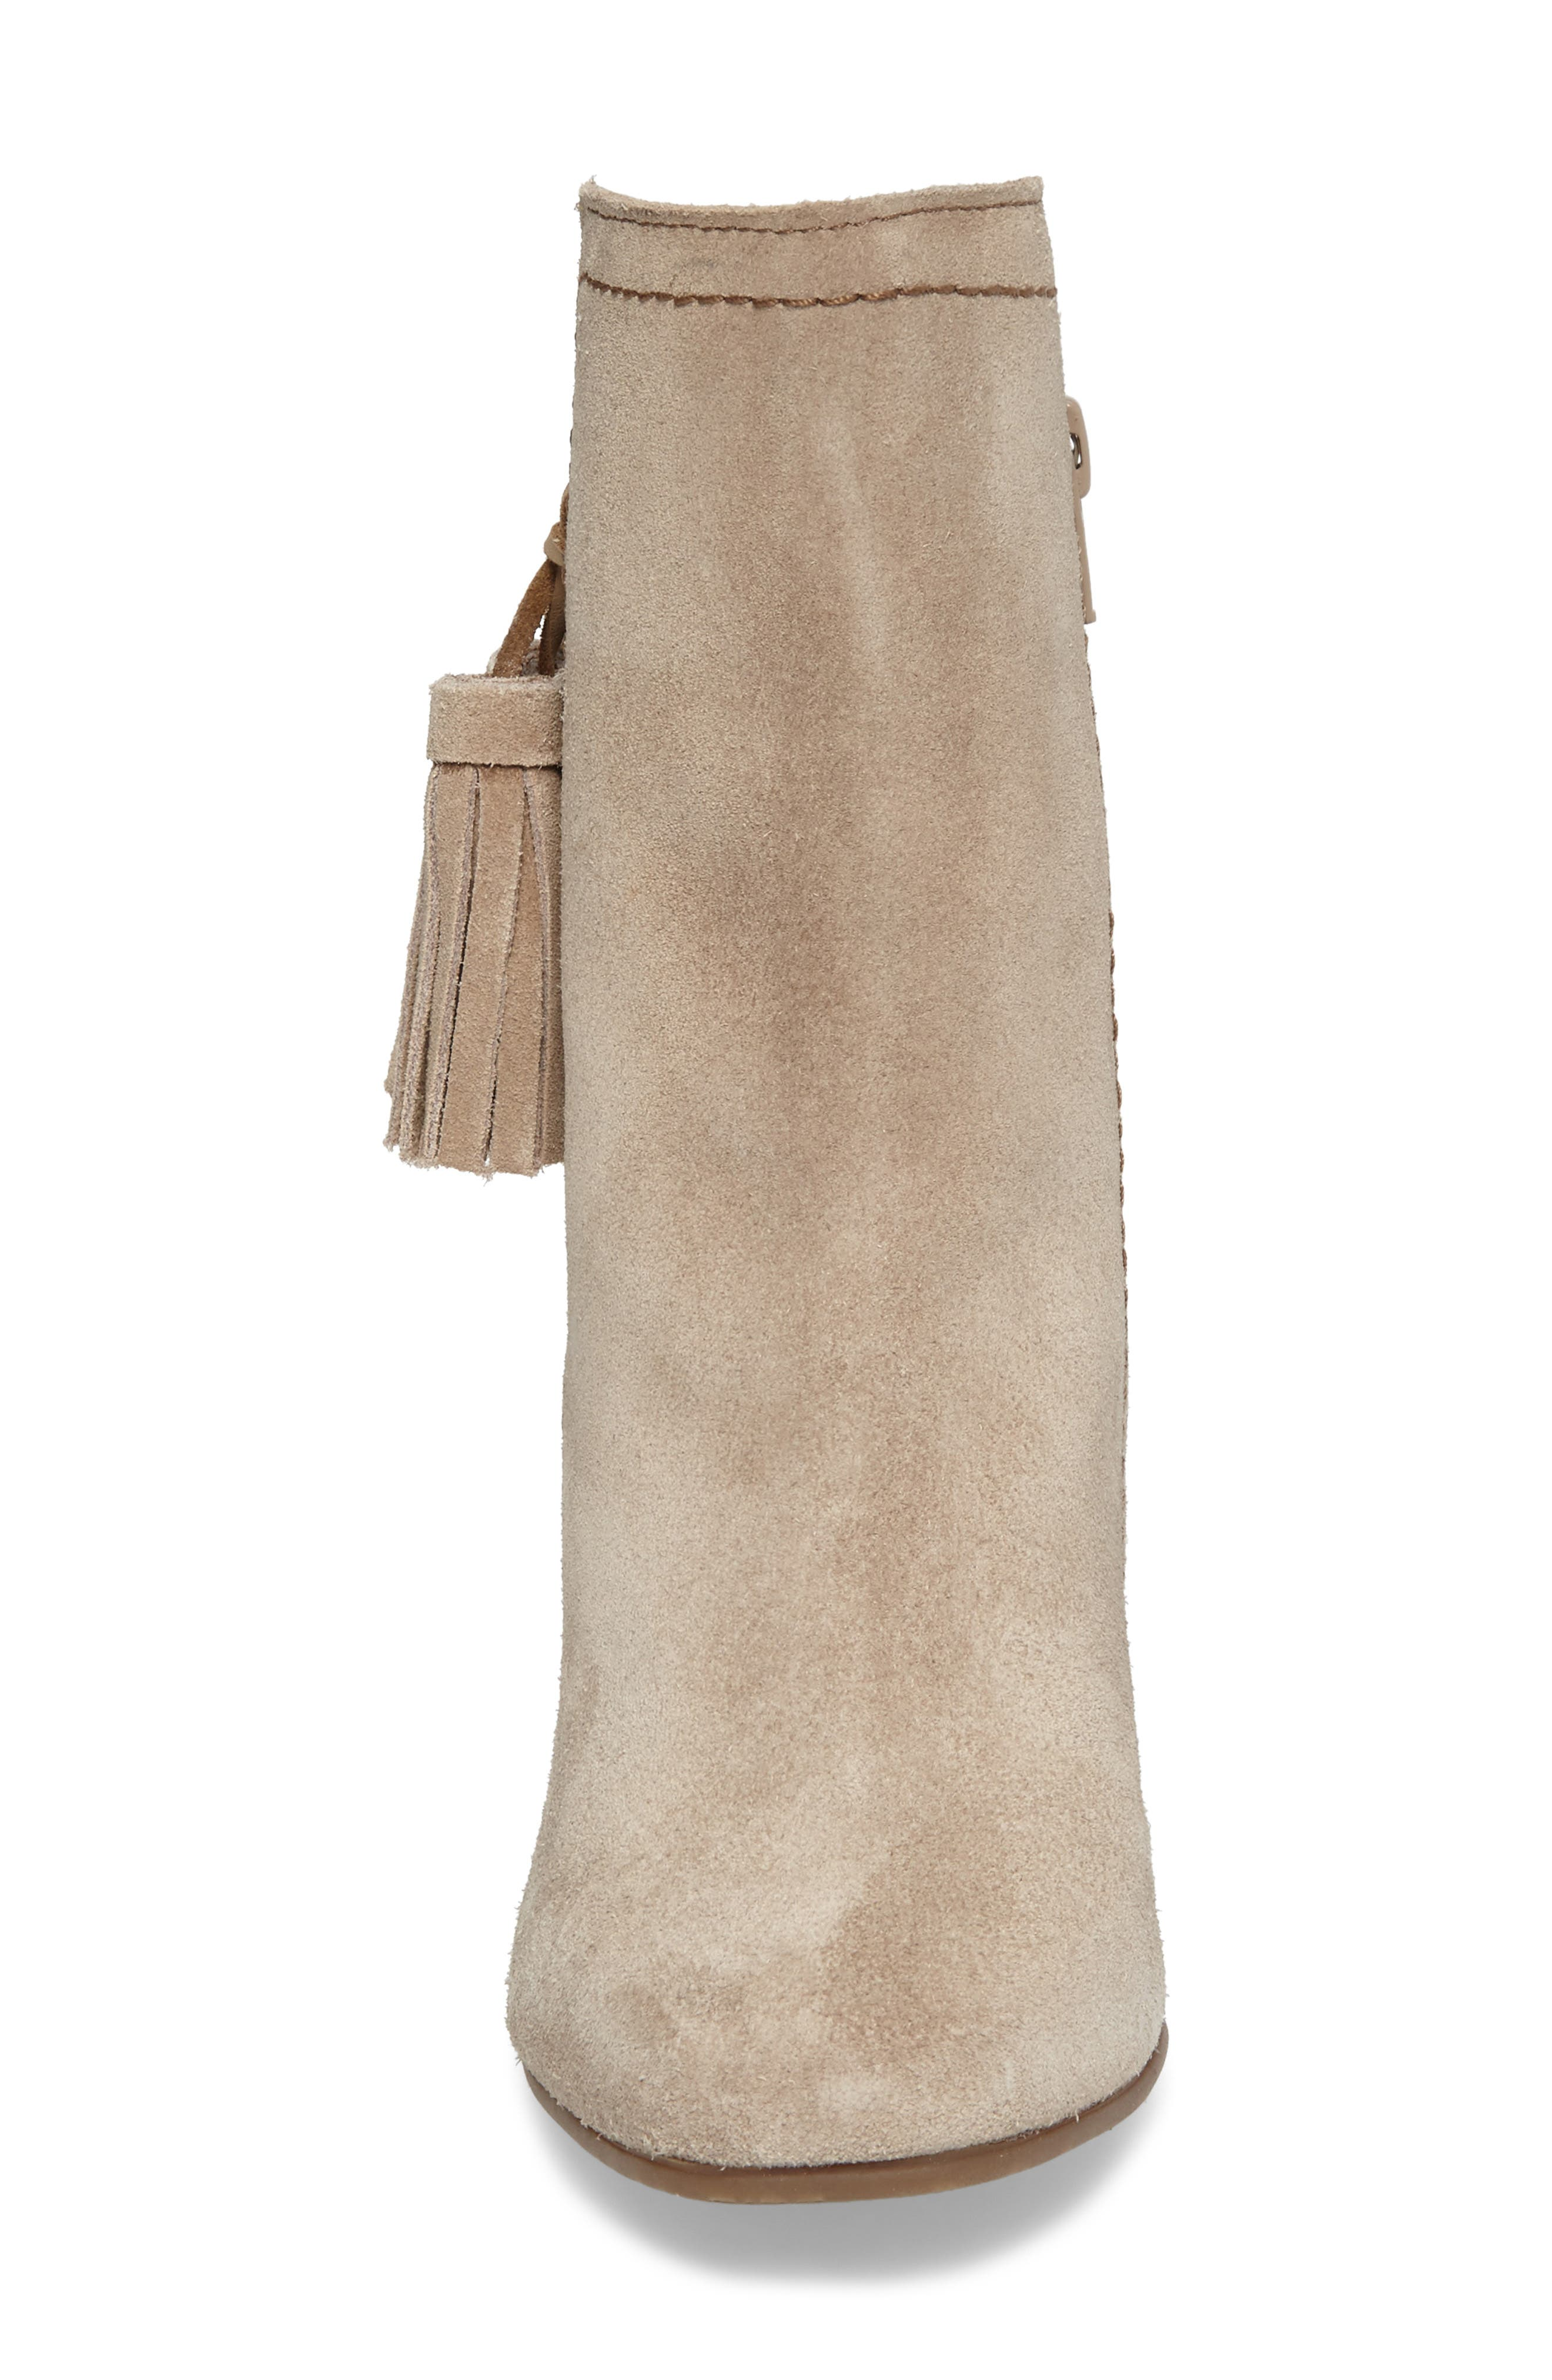 Daisee Billie Bootie,                             Alternate thumbnail 4, color,                             Taupe Suede